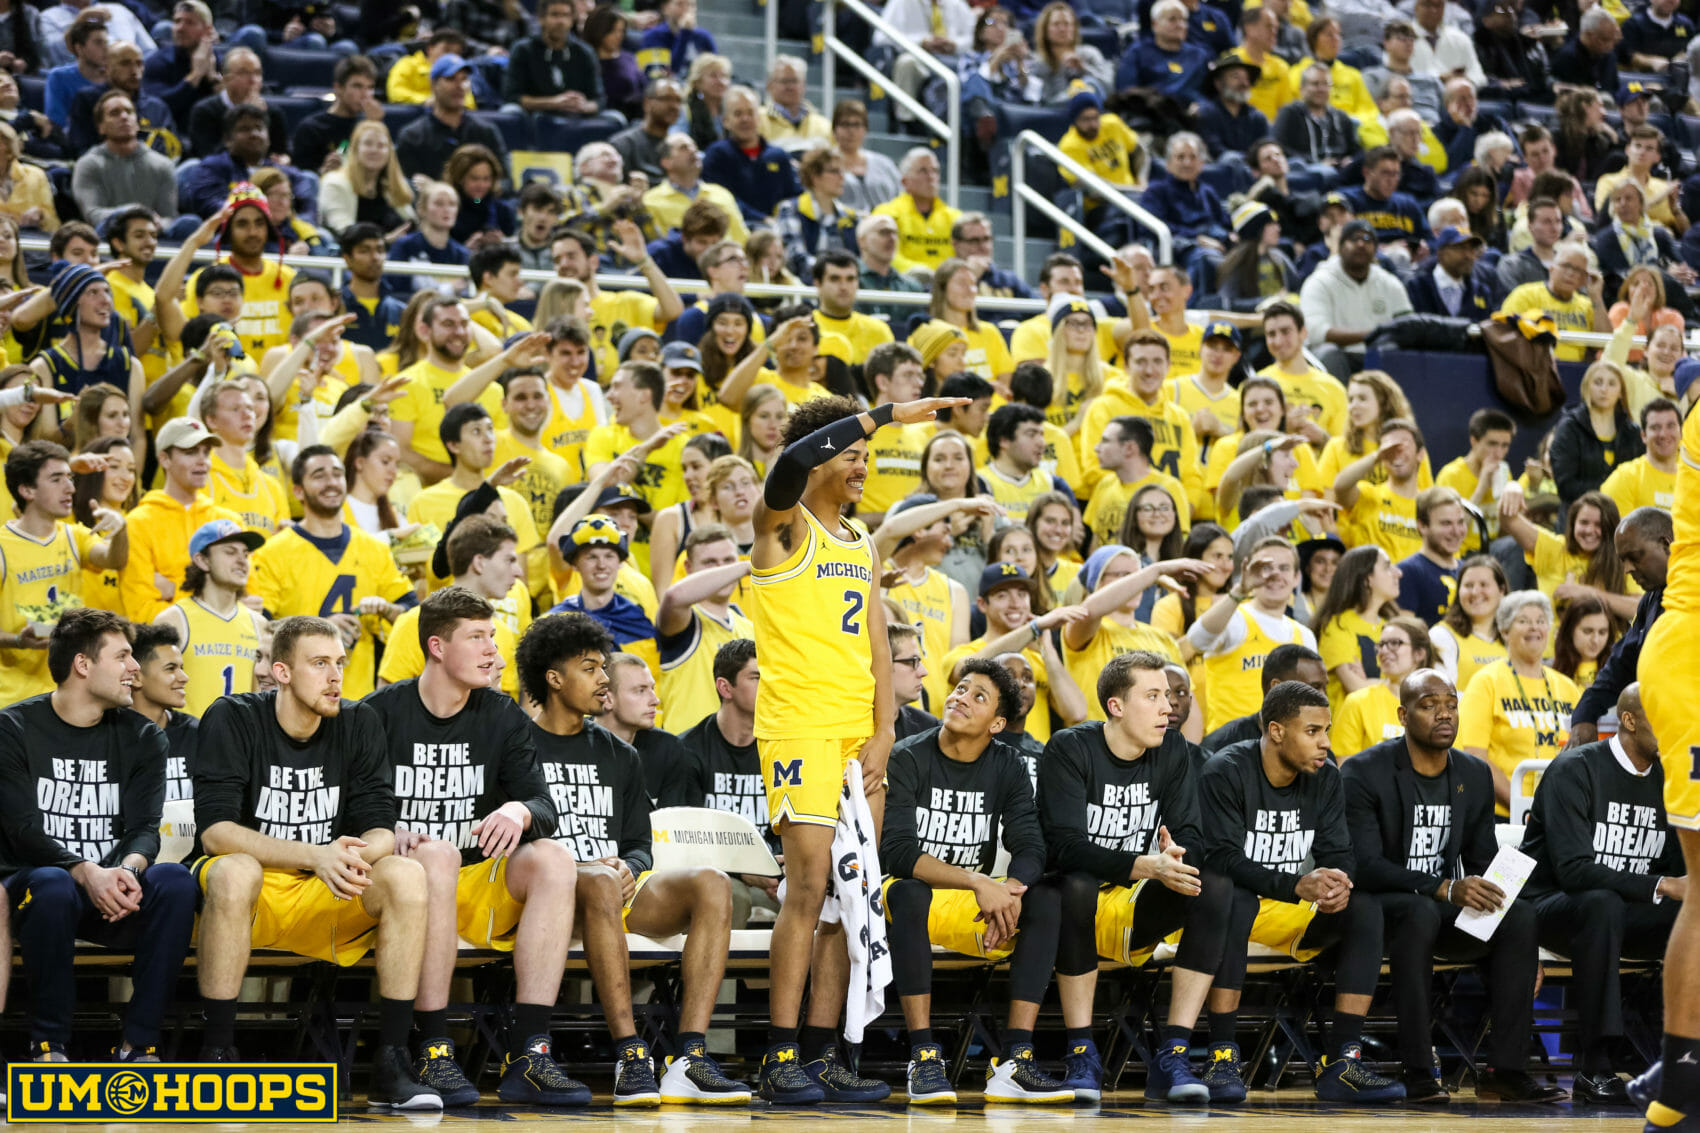 2013 14 Michigan Basketball Schedule Um Hoops Com